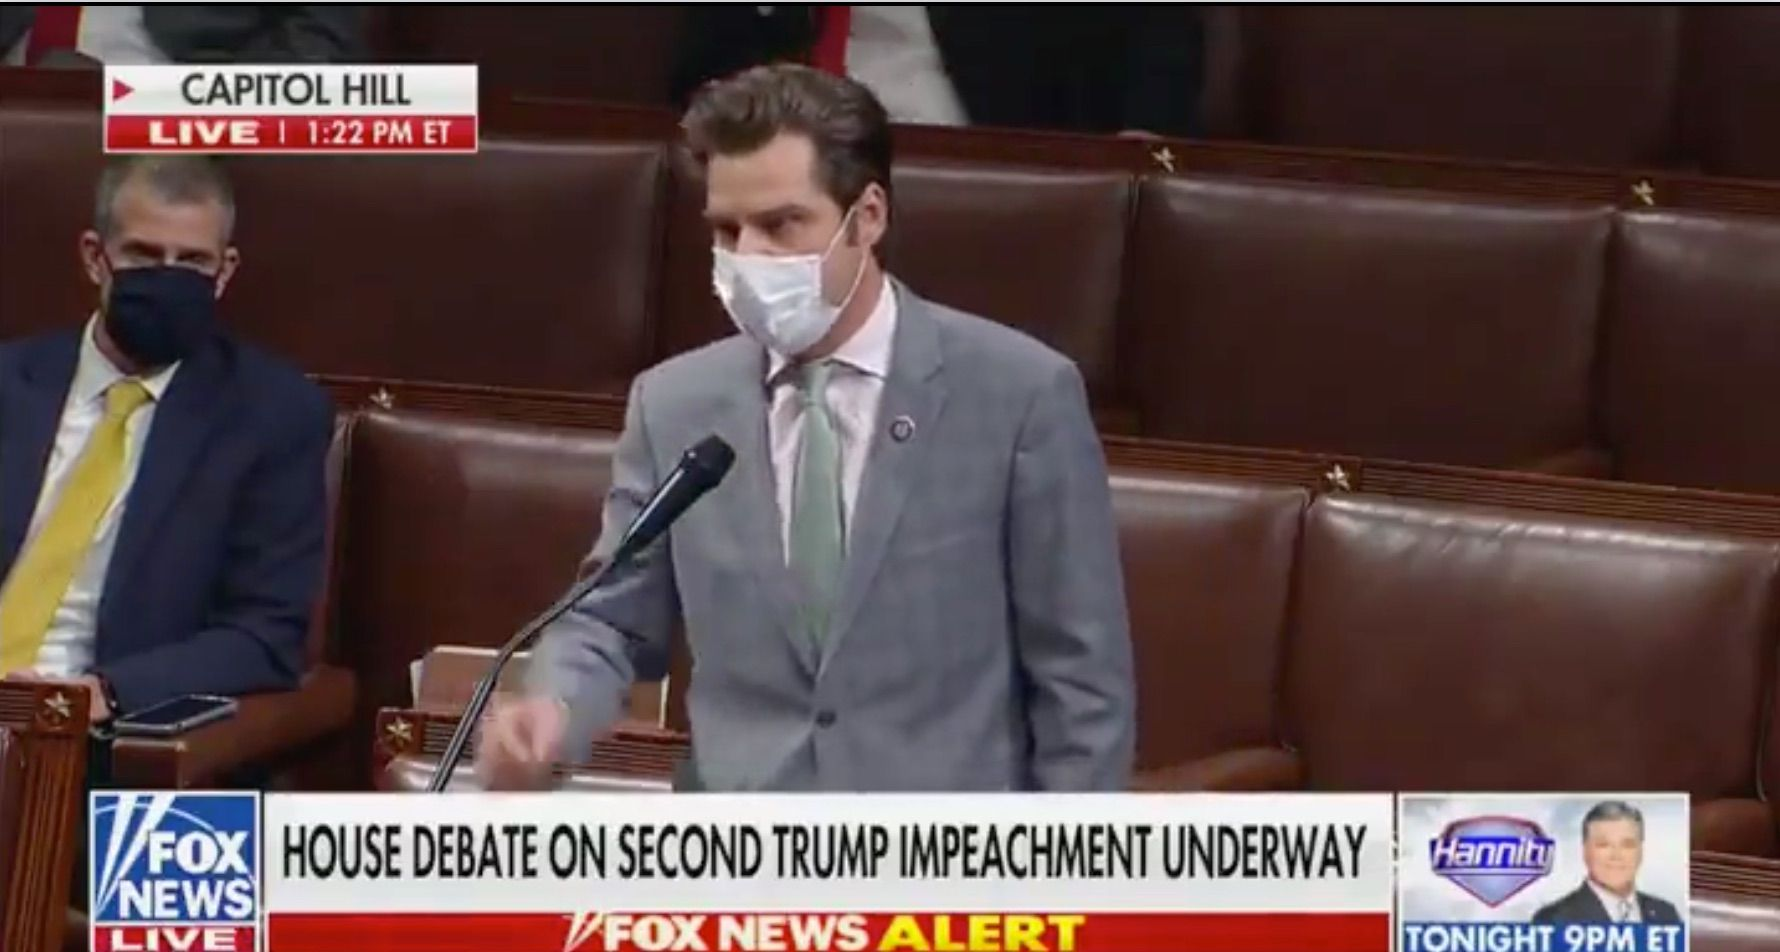 WATCH: Matt Gaetz calls our Democrat hypocrisy on 'incitement of violence'